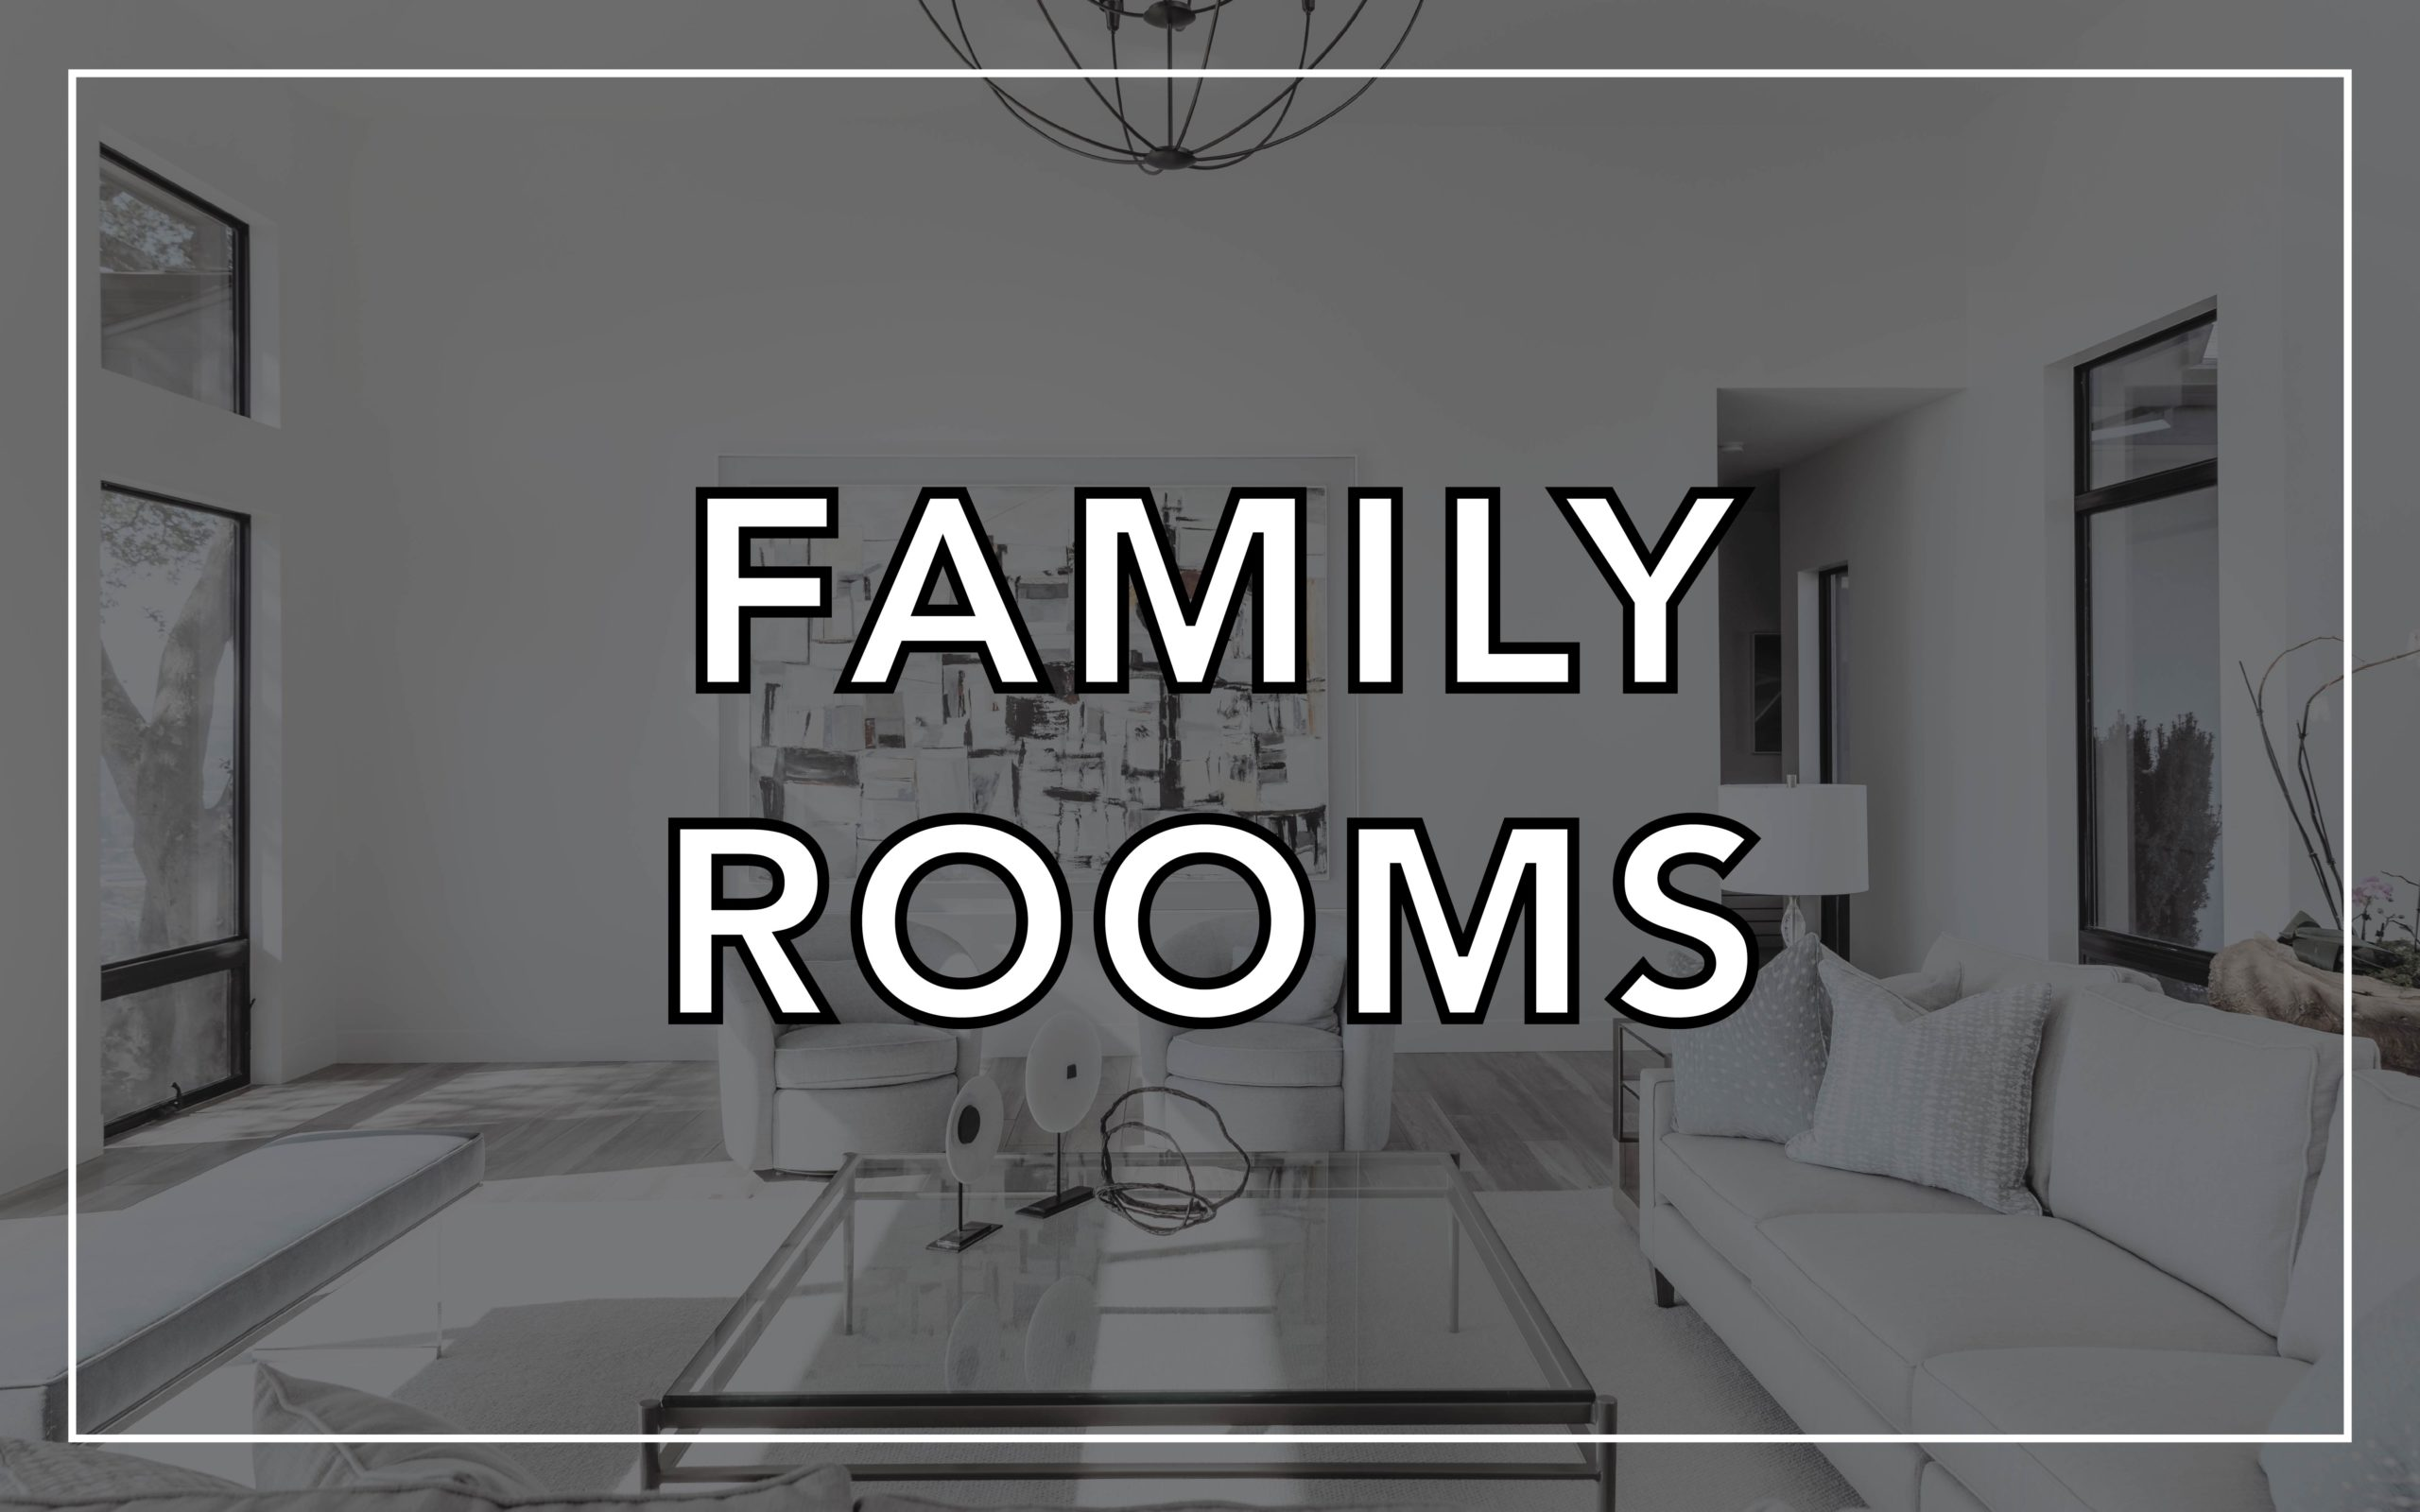 ROOMS CATALOG_Family Rooms - Shaded